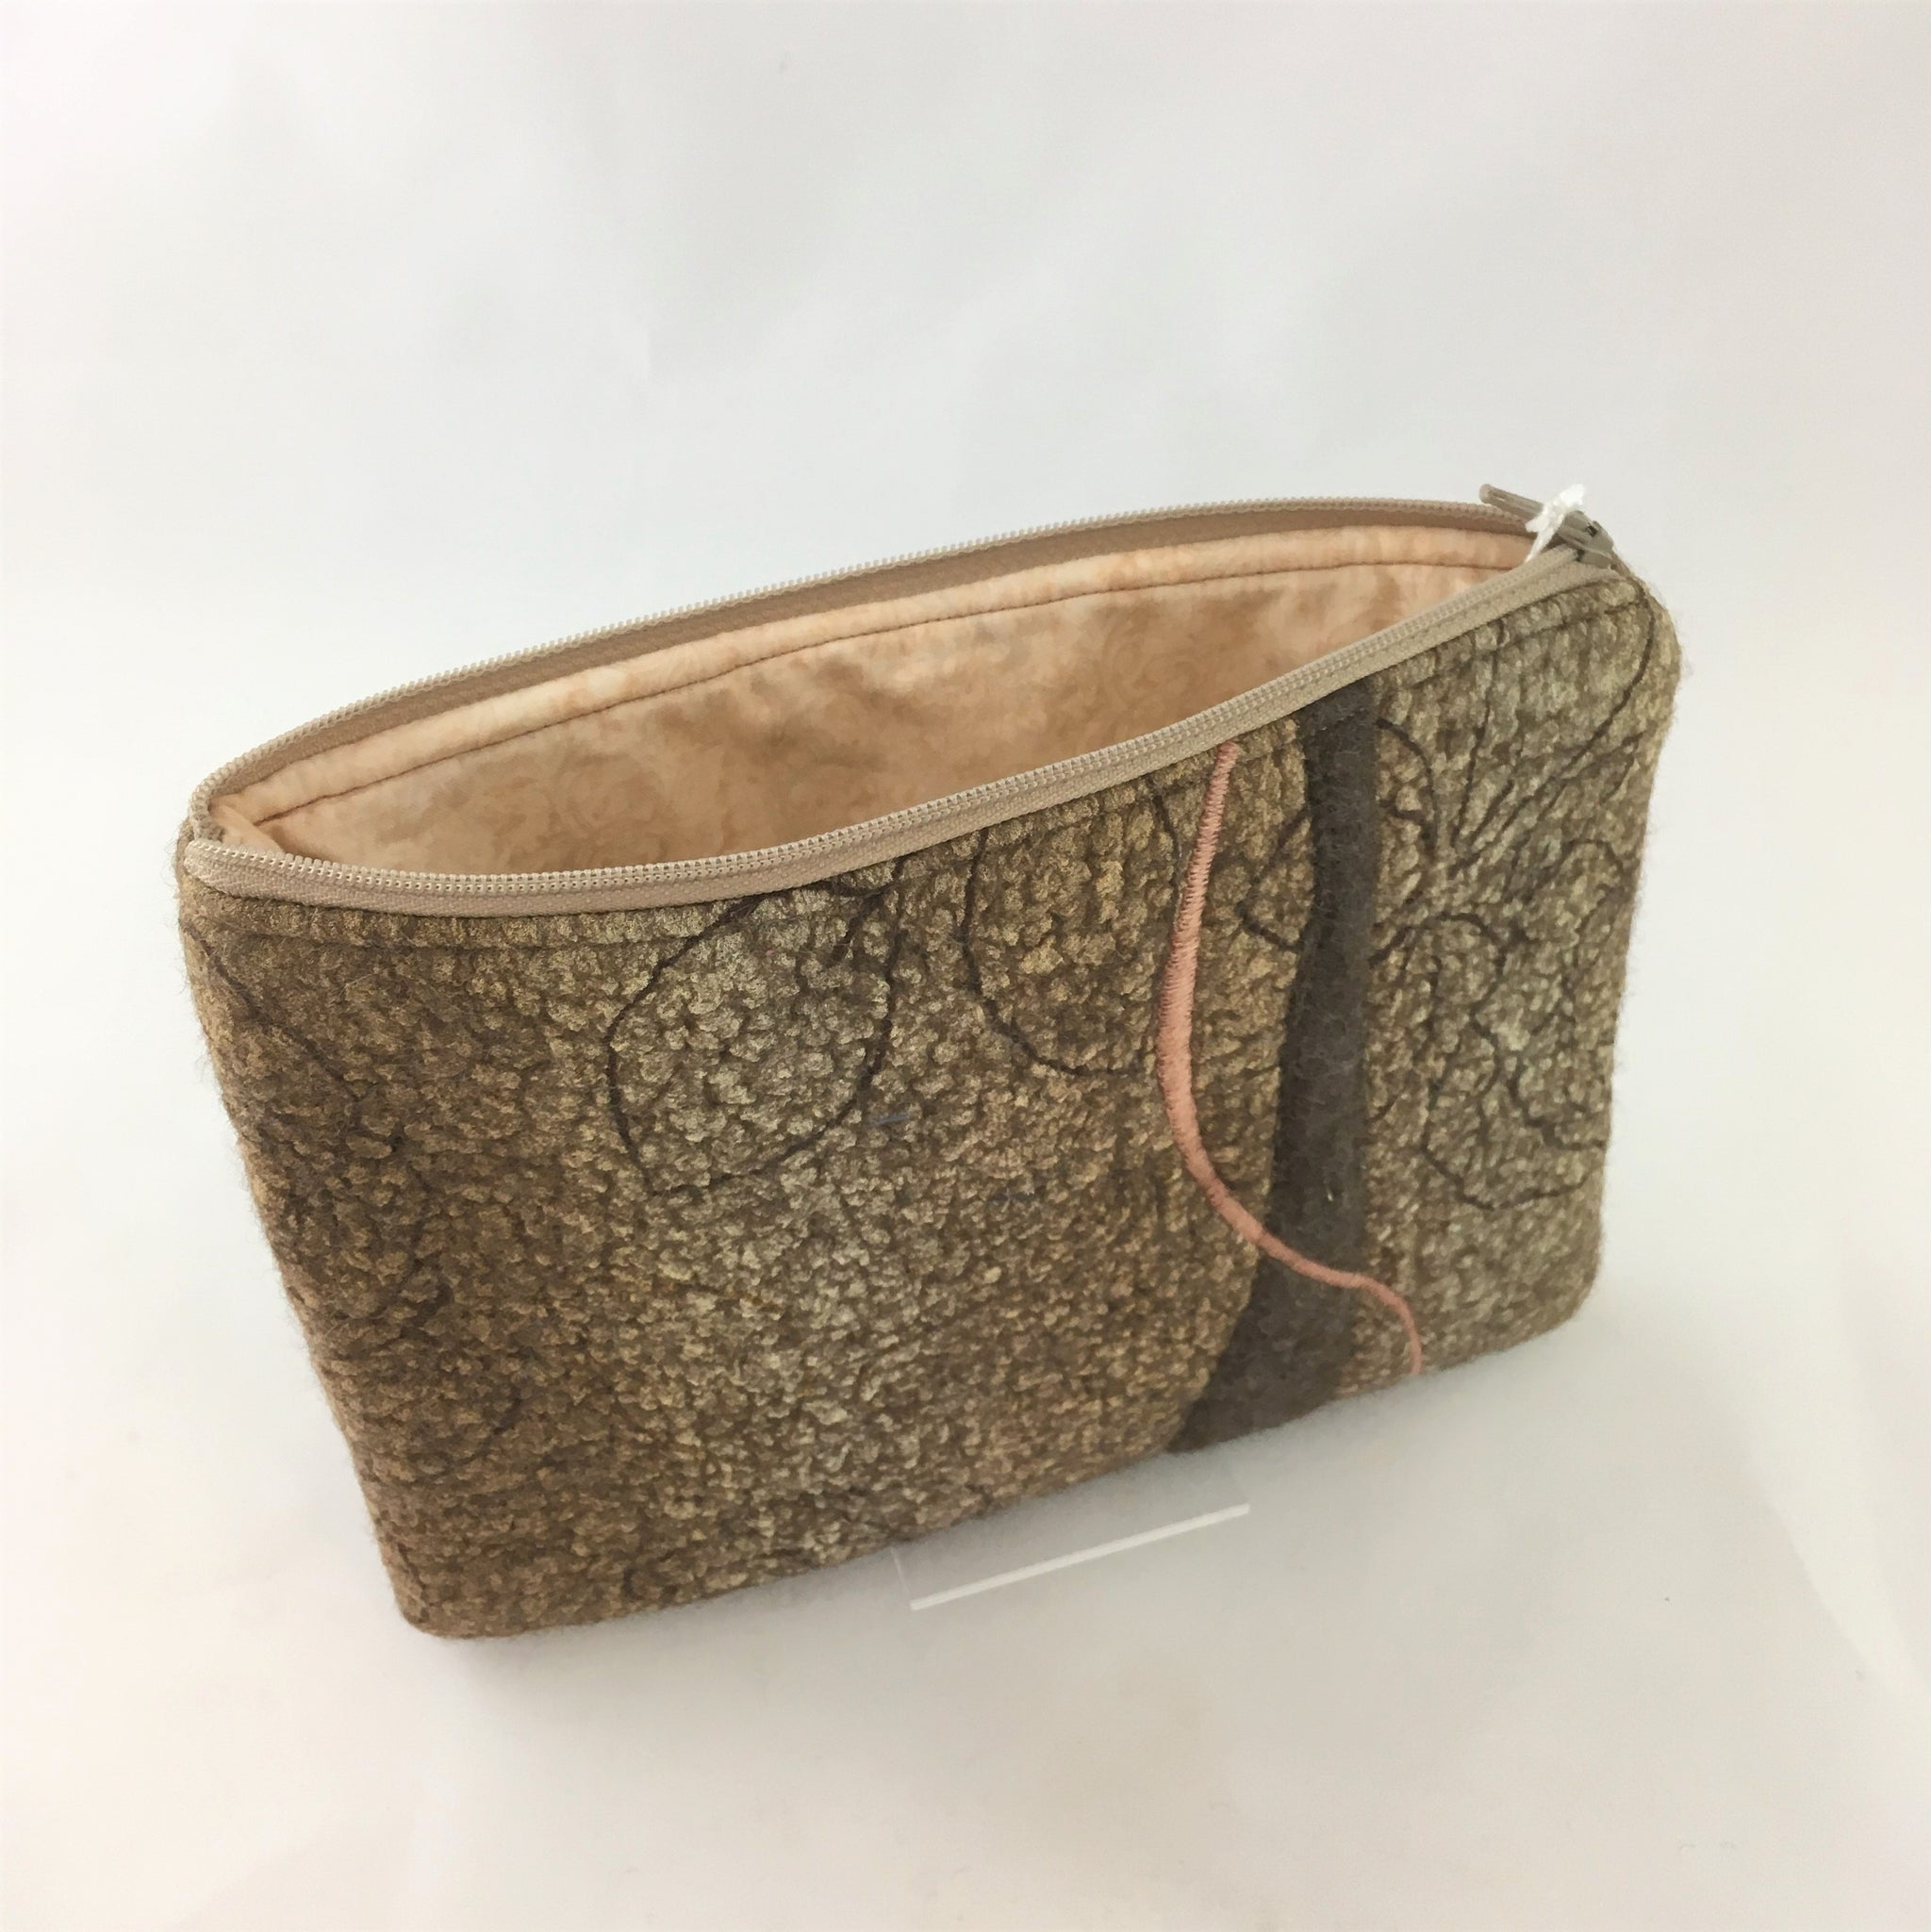 Purse by Helen Macritchie